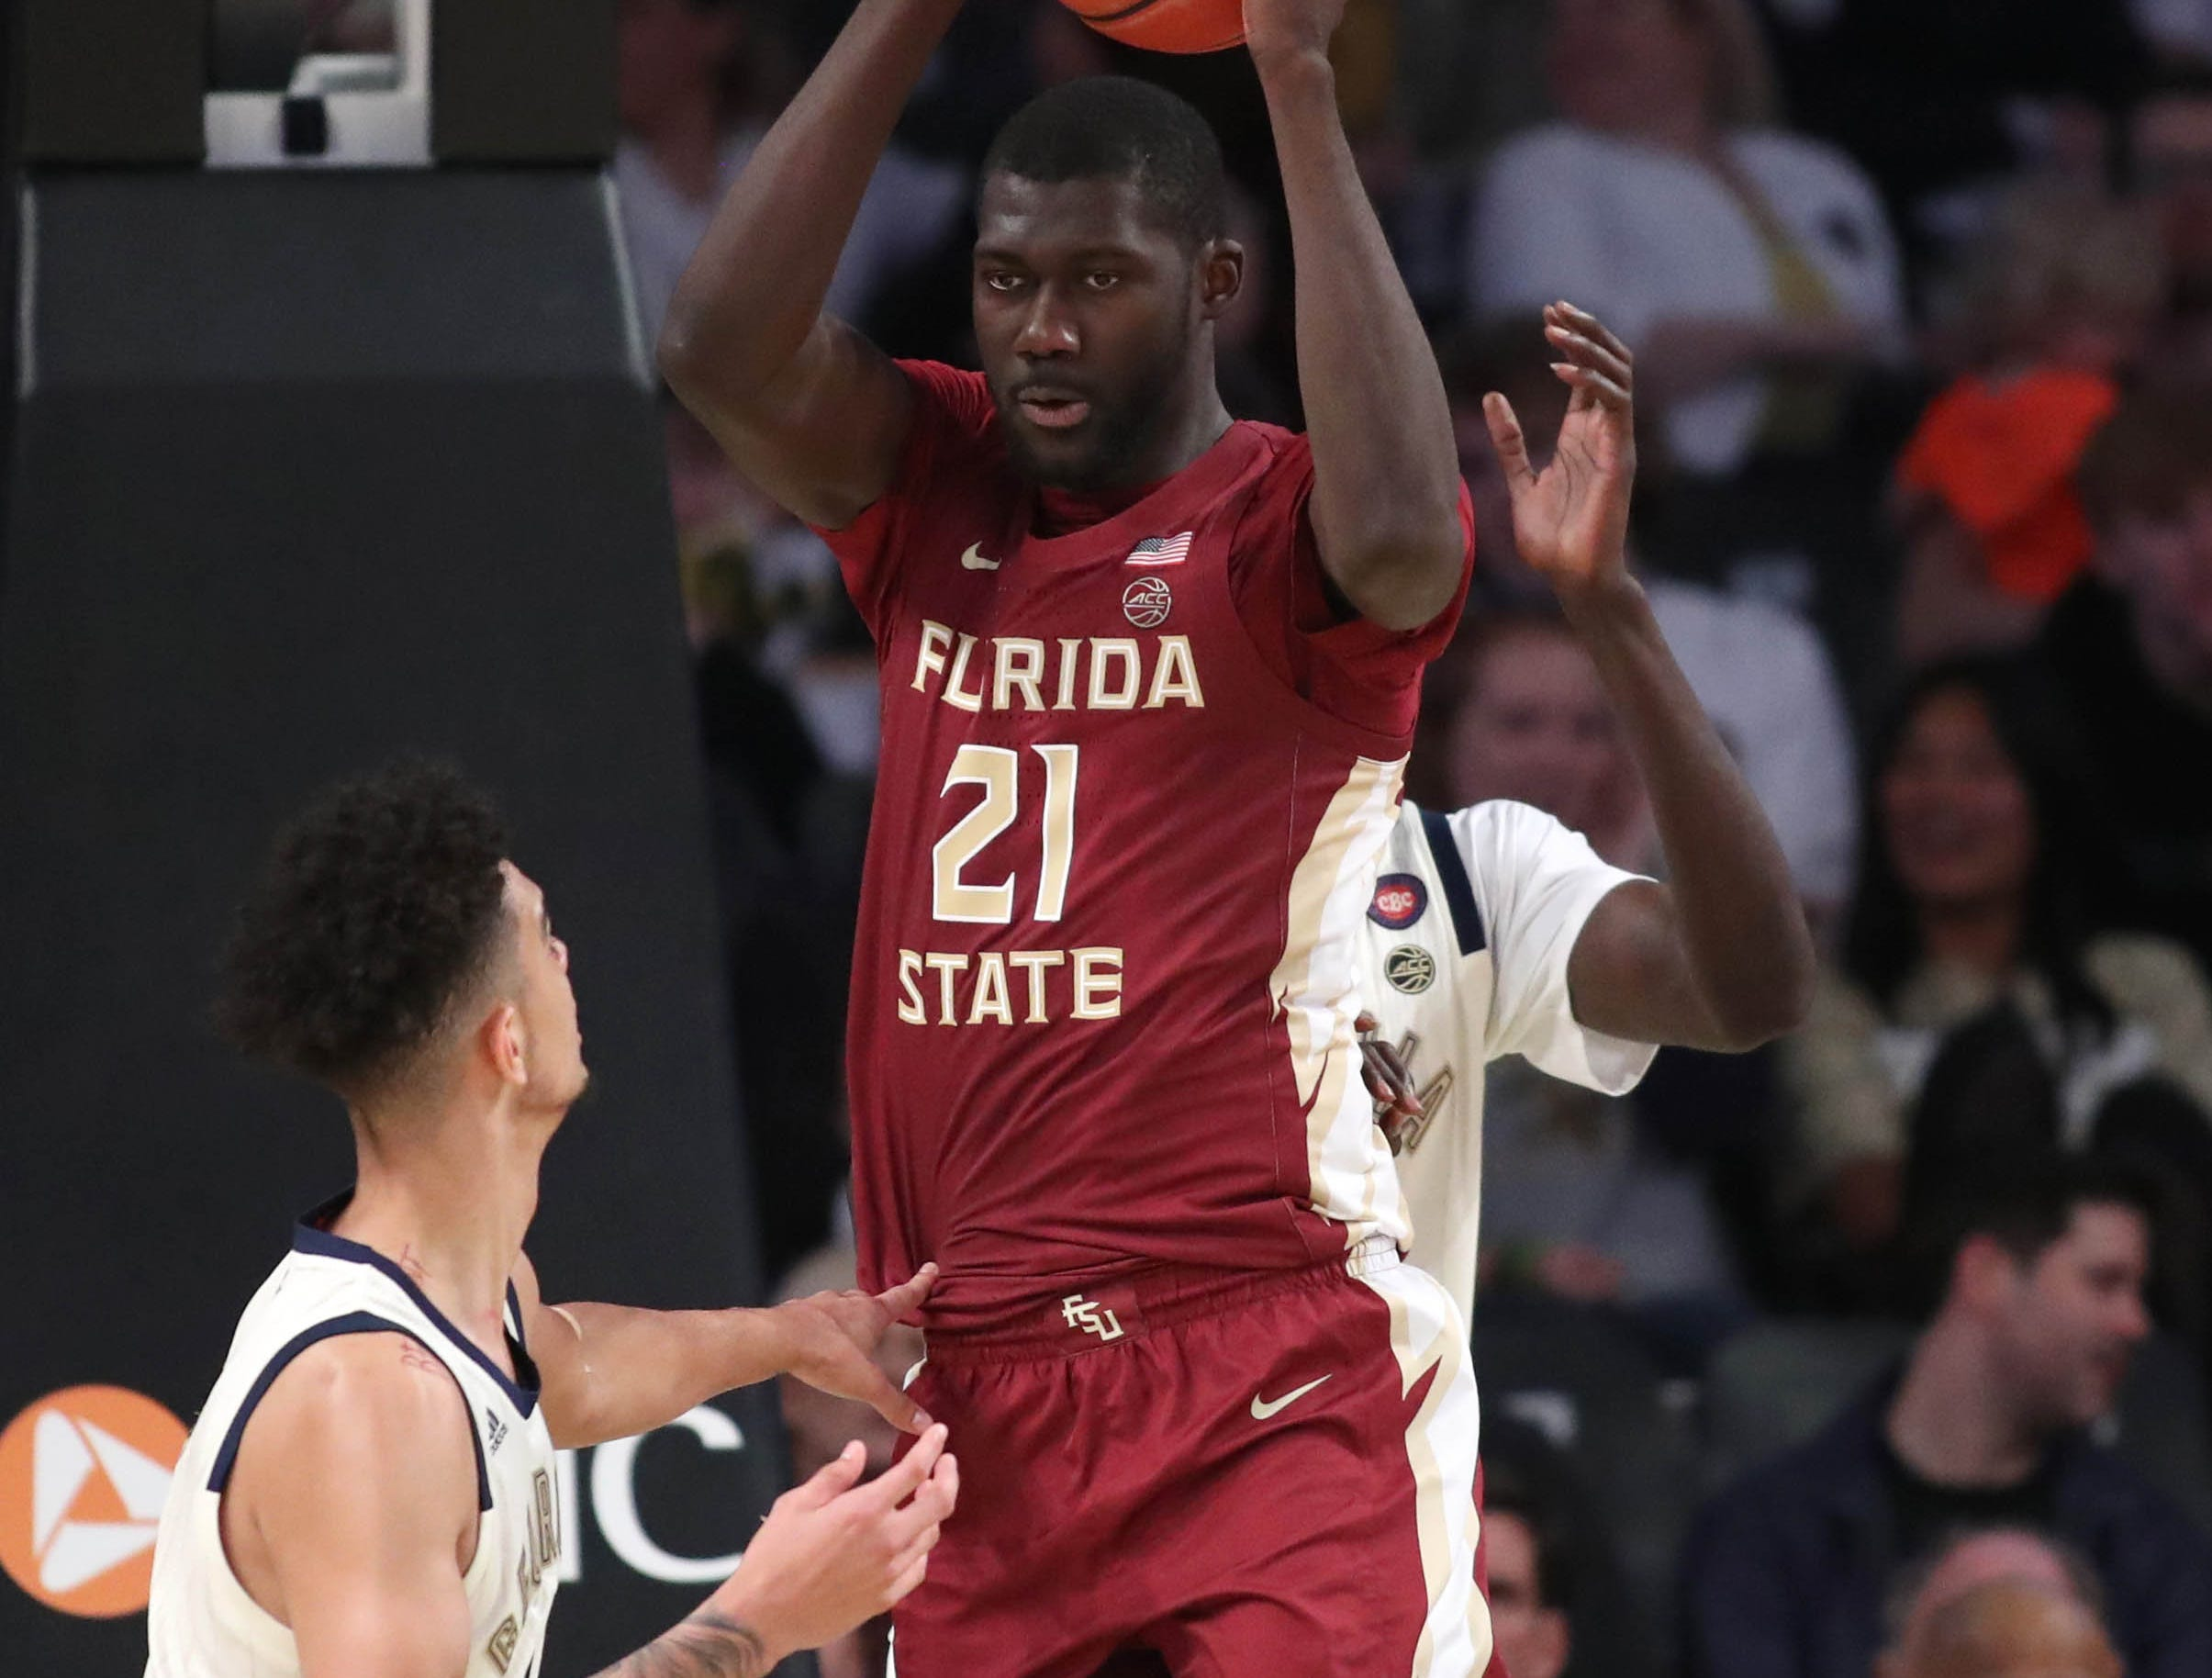 Feb 16, 2019; Atlanta, GA, USA; Florida State Seminoles center Christ Koumadje (21) grabs a rebound against Georgia Tech Yellow Jackets guard Michael Devoe (0) in the second half at McCamish Pavilion. Mandatory Credit: Jason Getz-USA TODAY Sports